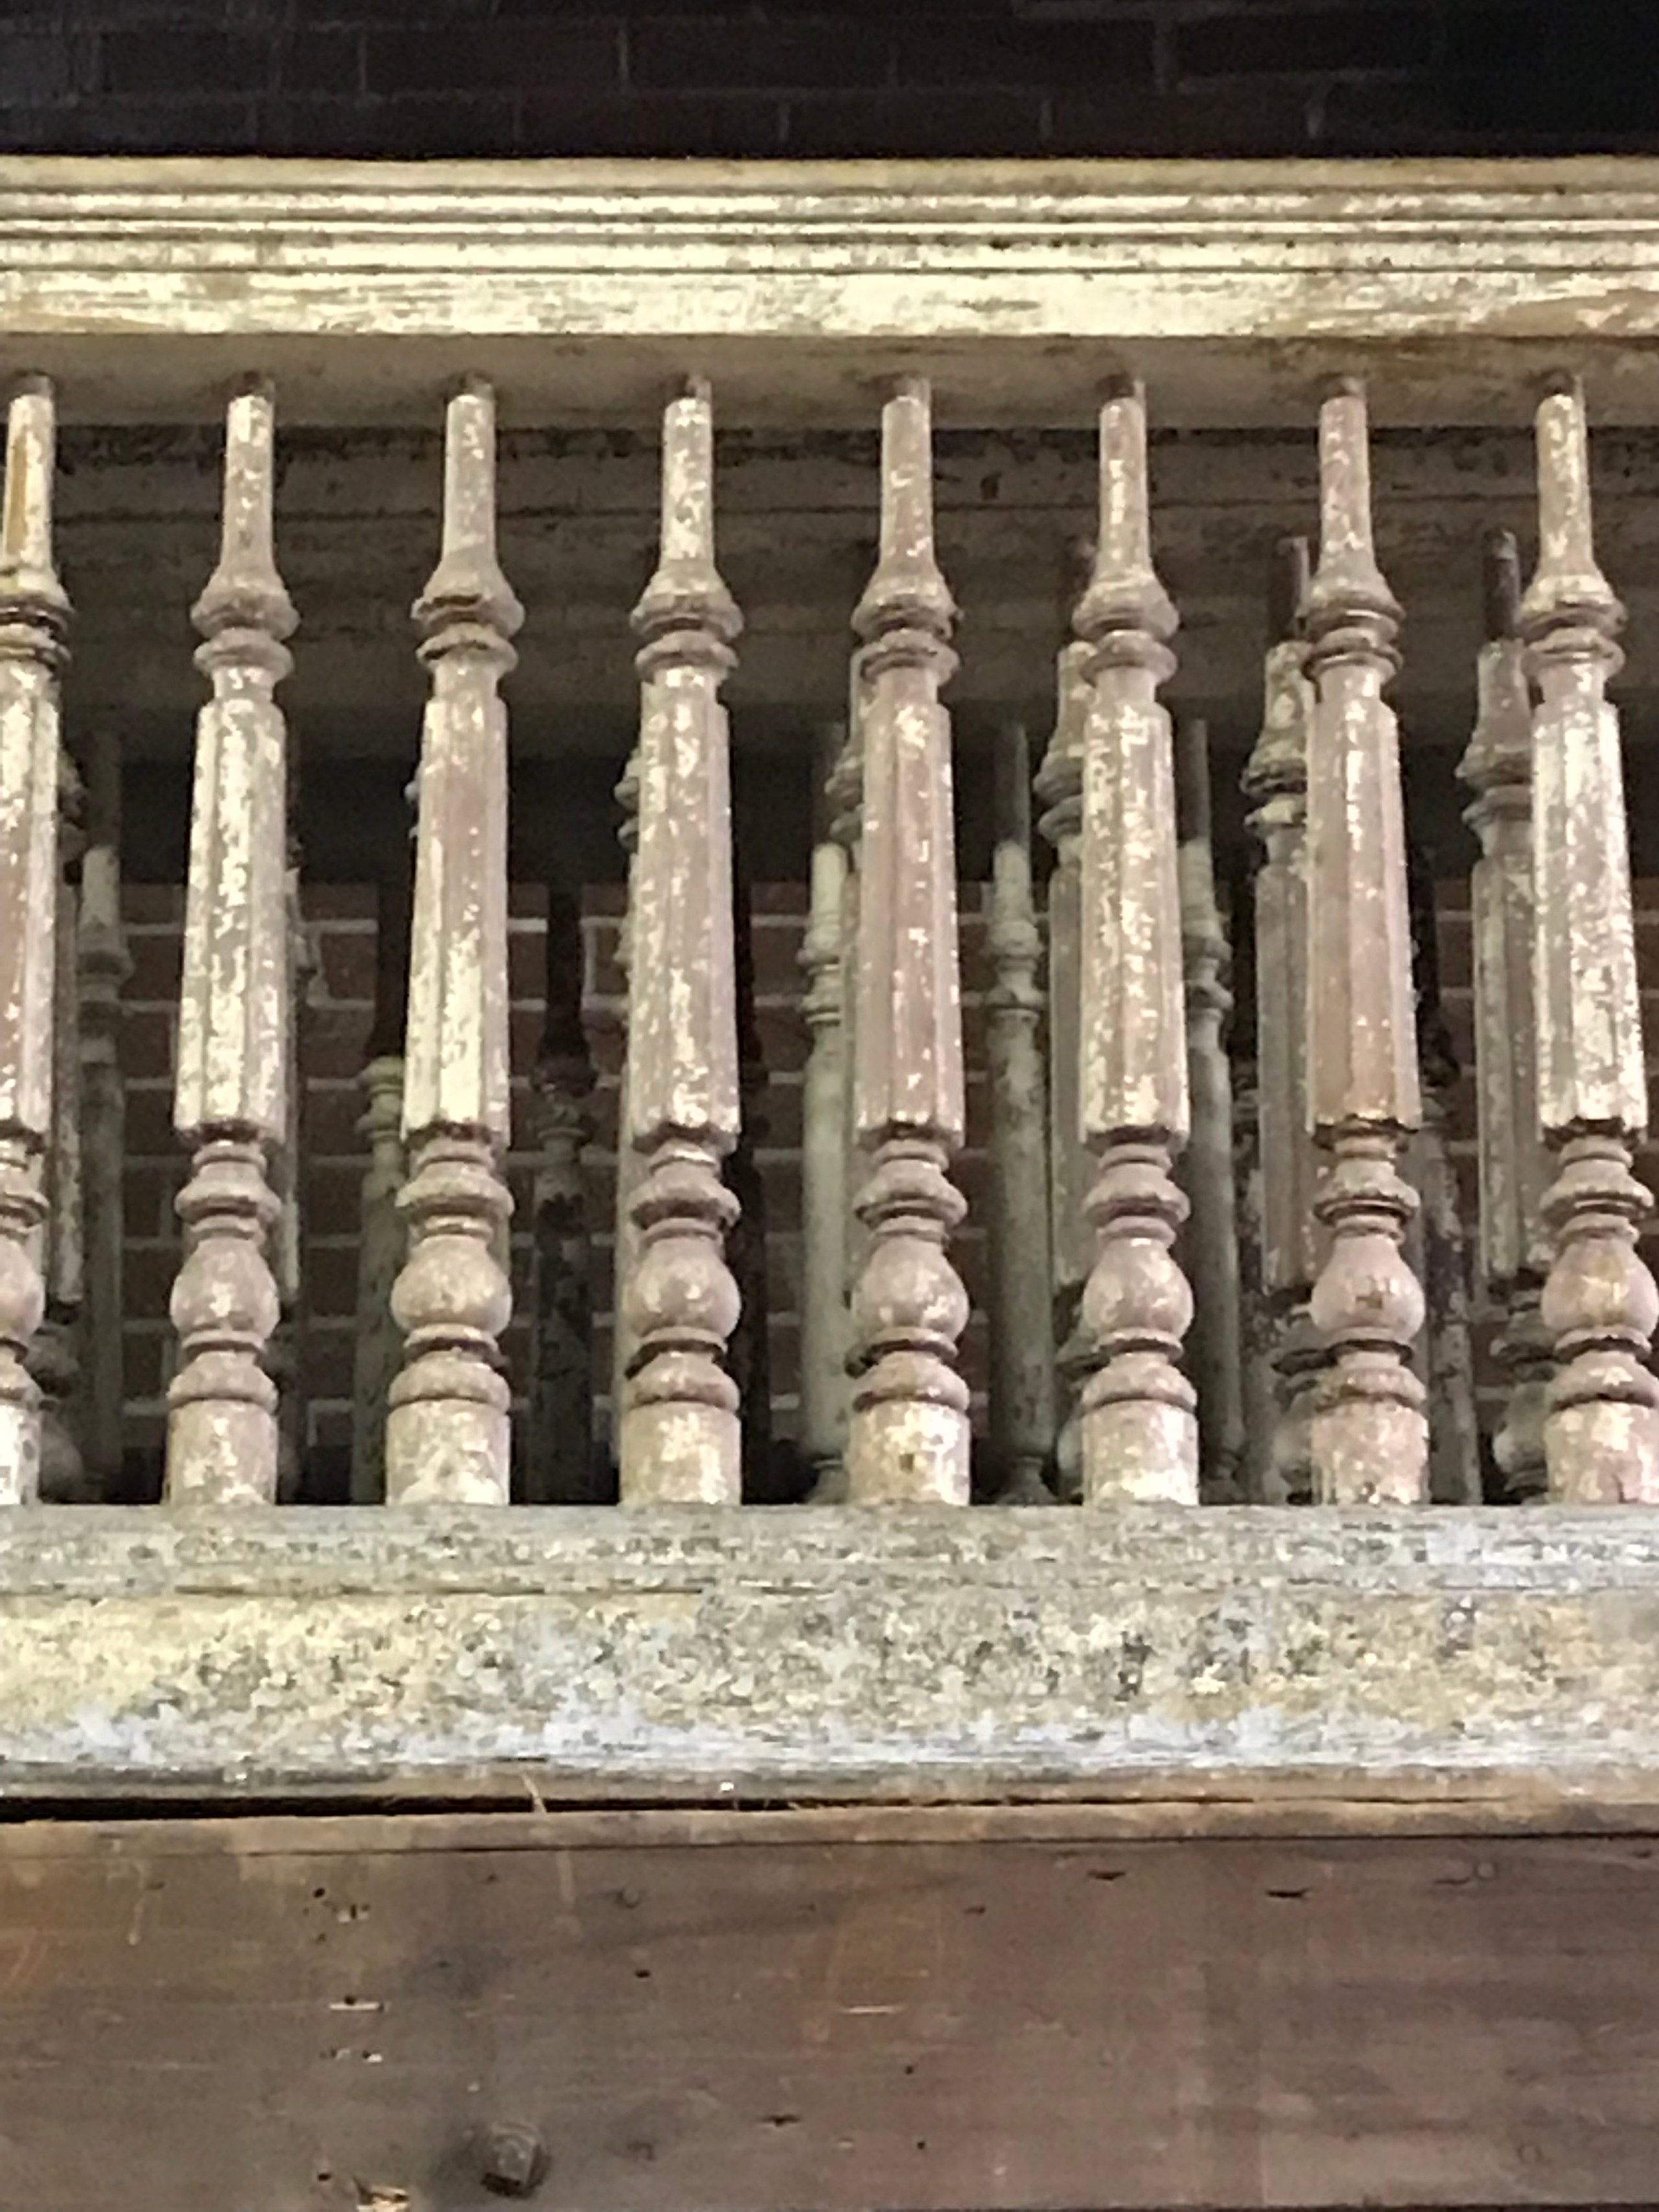 Cypress railings from the Castle Ballroom in St. Louis MO.